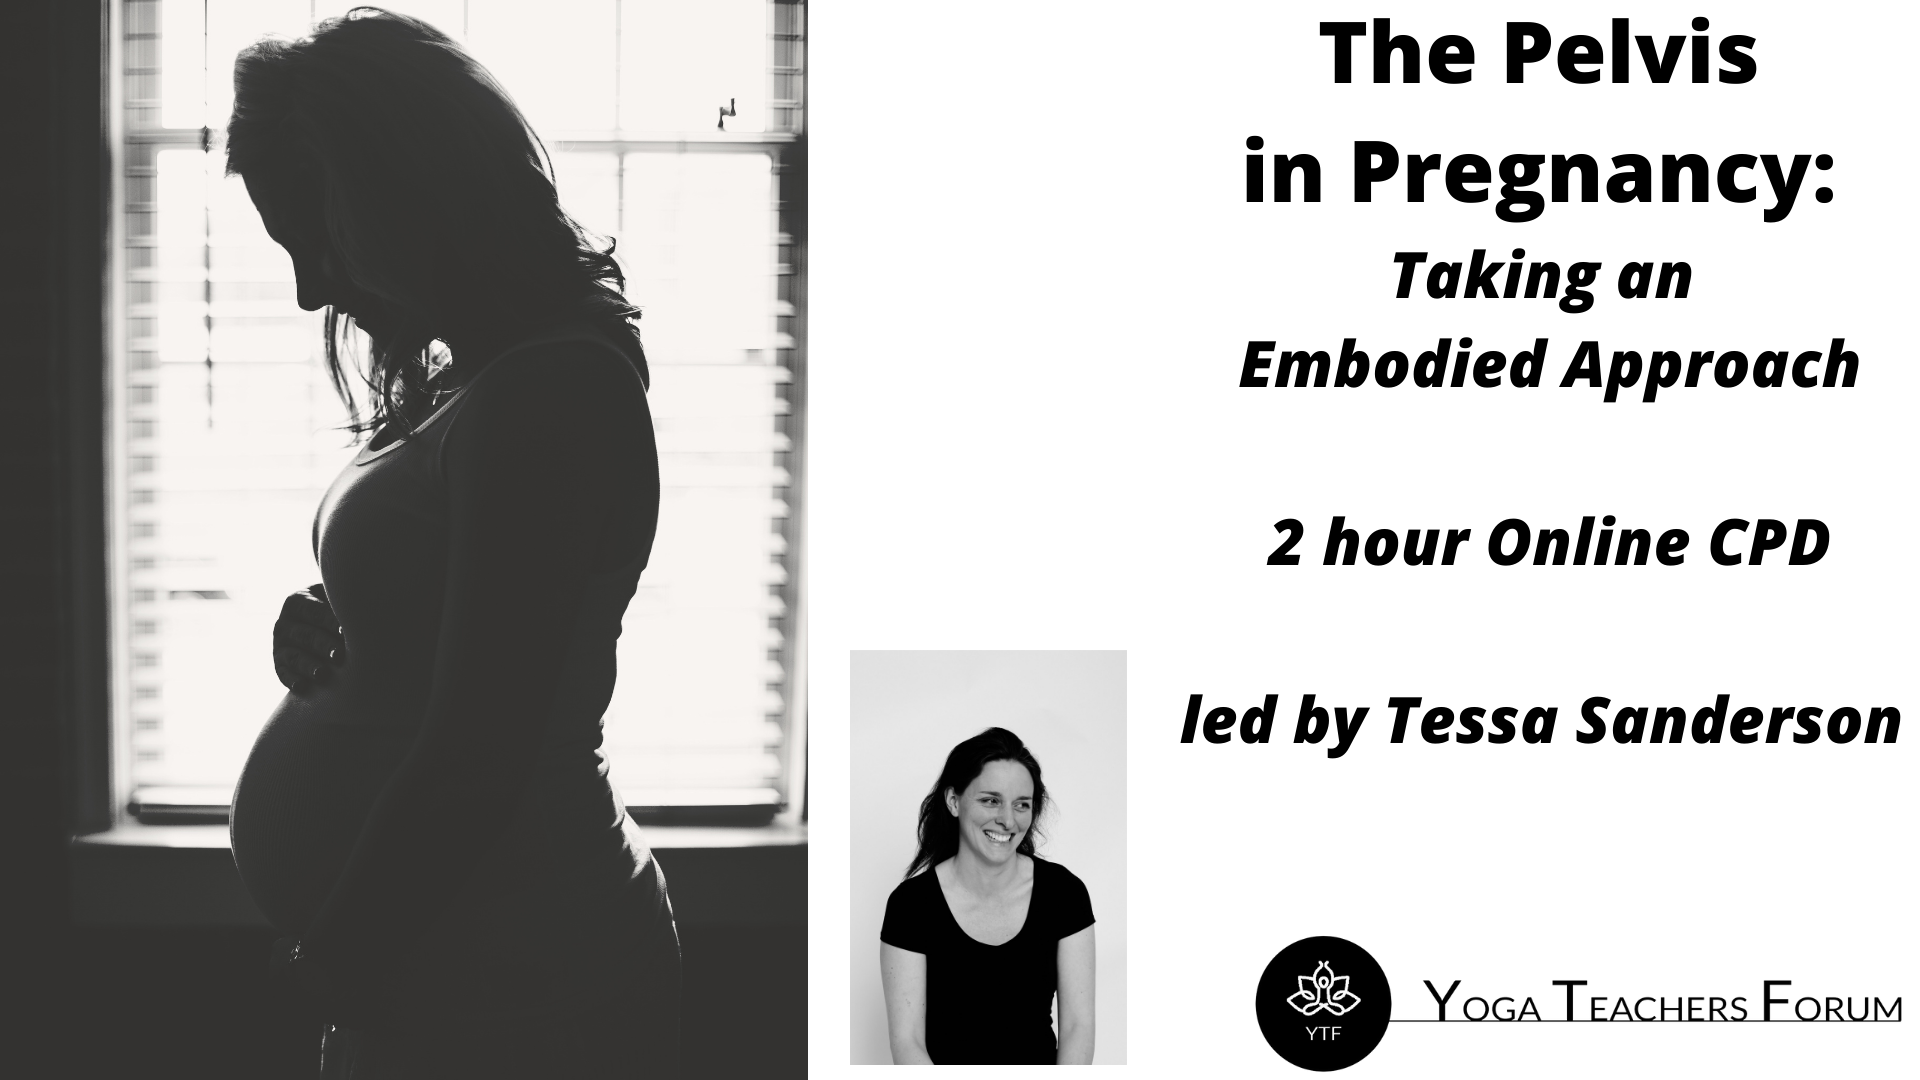 ThePelvis in Pregnancy Taking and Embodied Approach